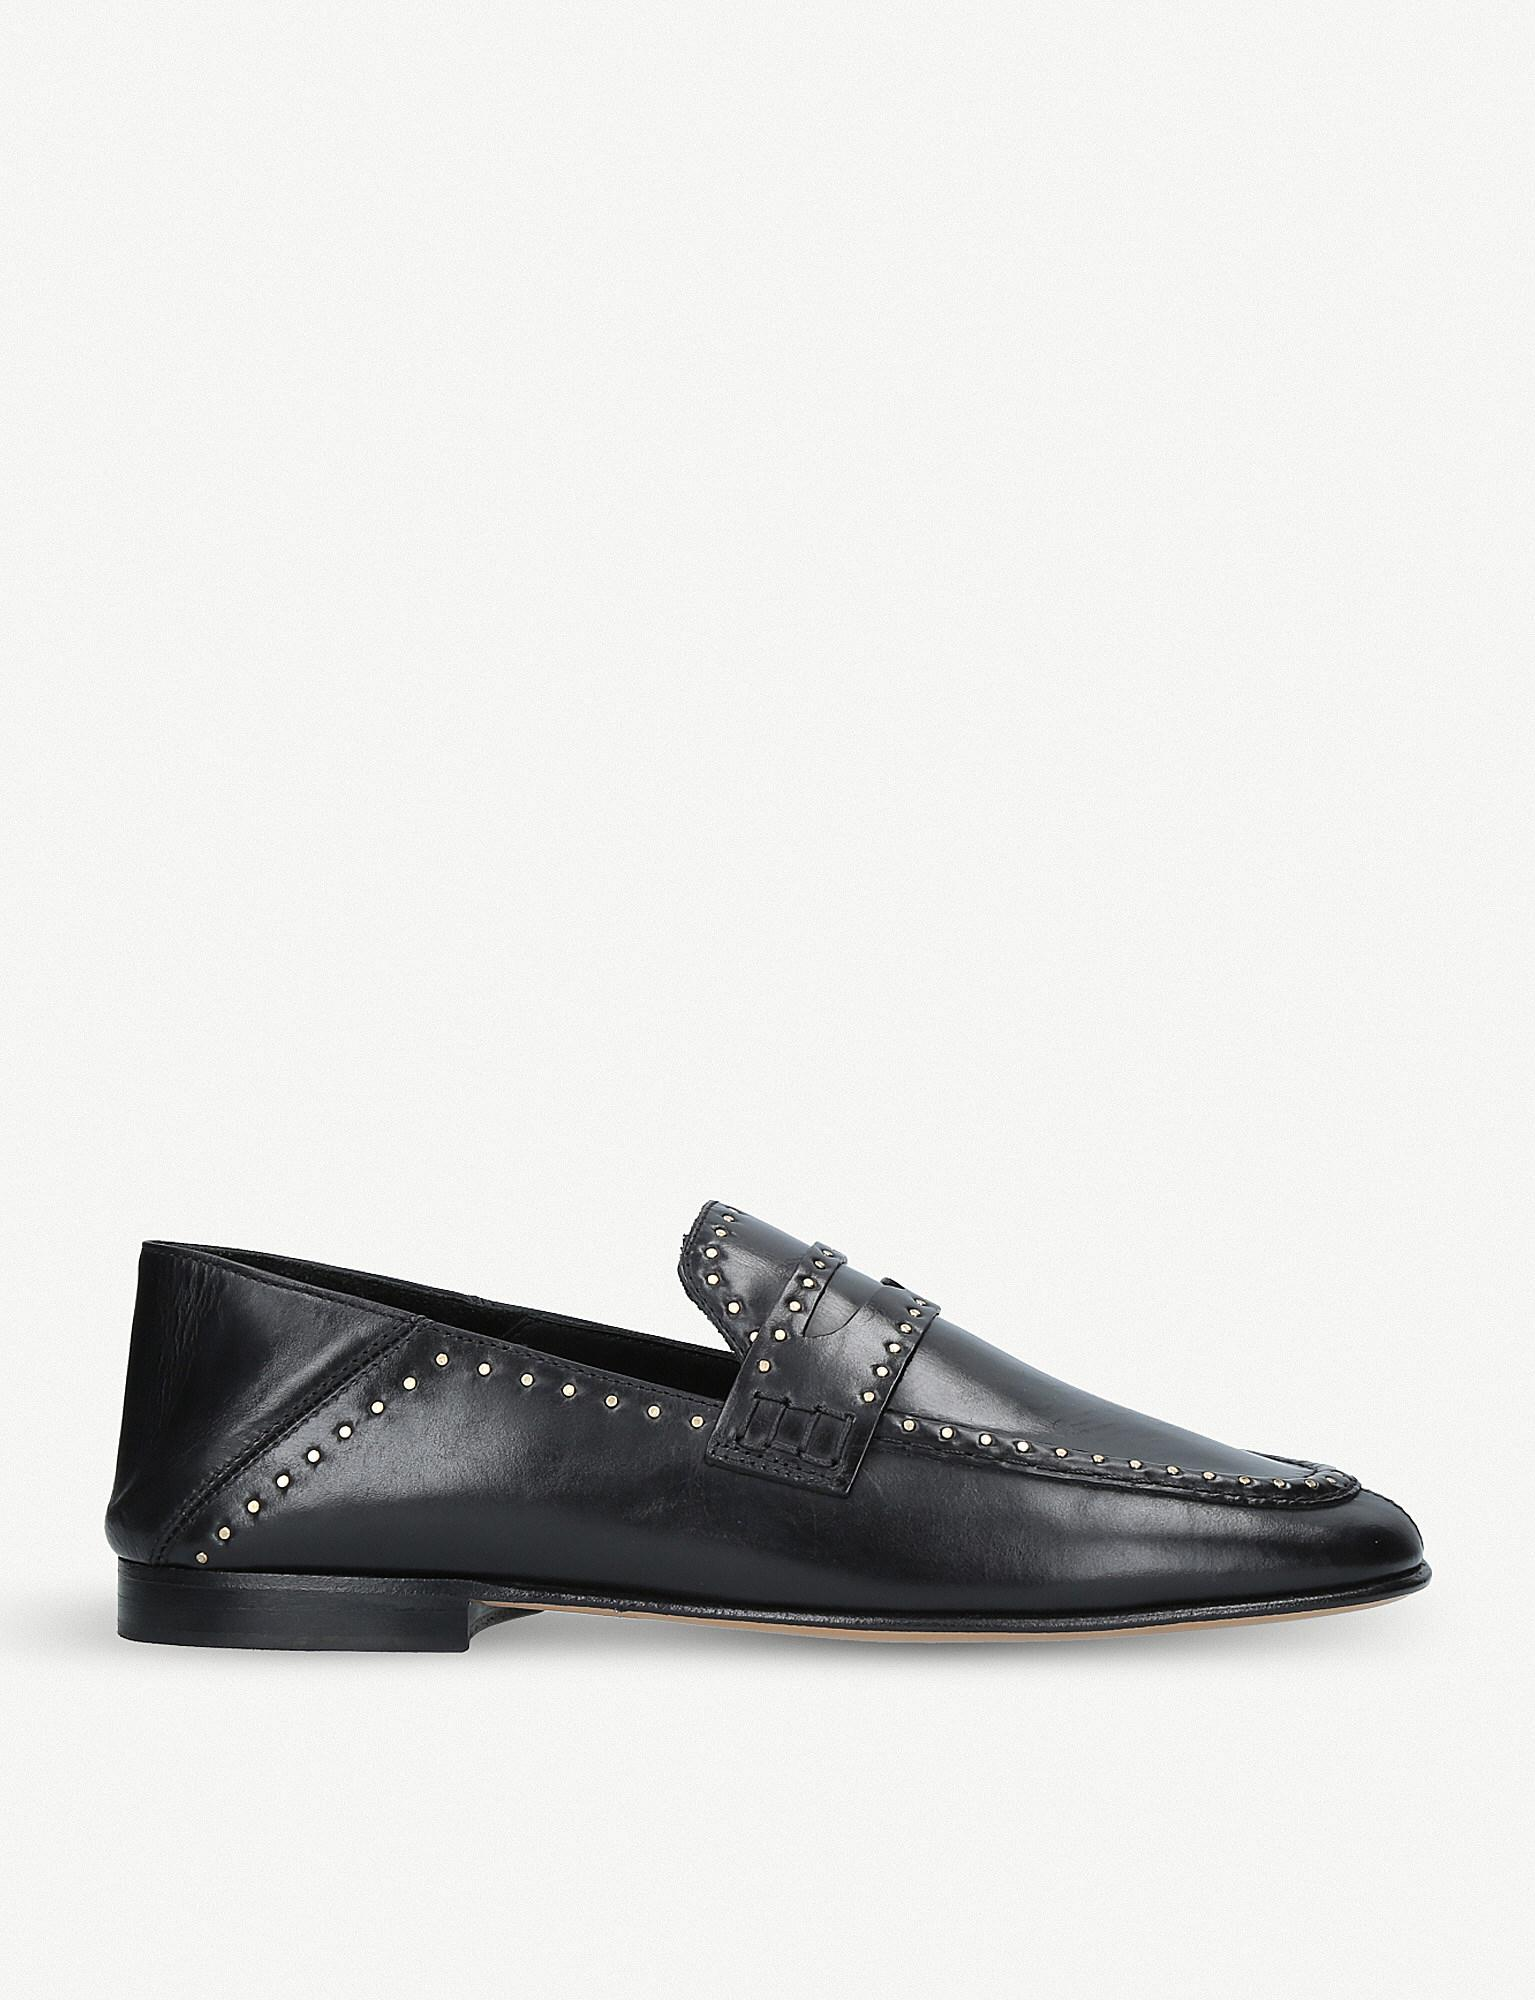 49125ada91 Lyst - Isabel Marant Fezzy Studded Leather Loafers in Black